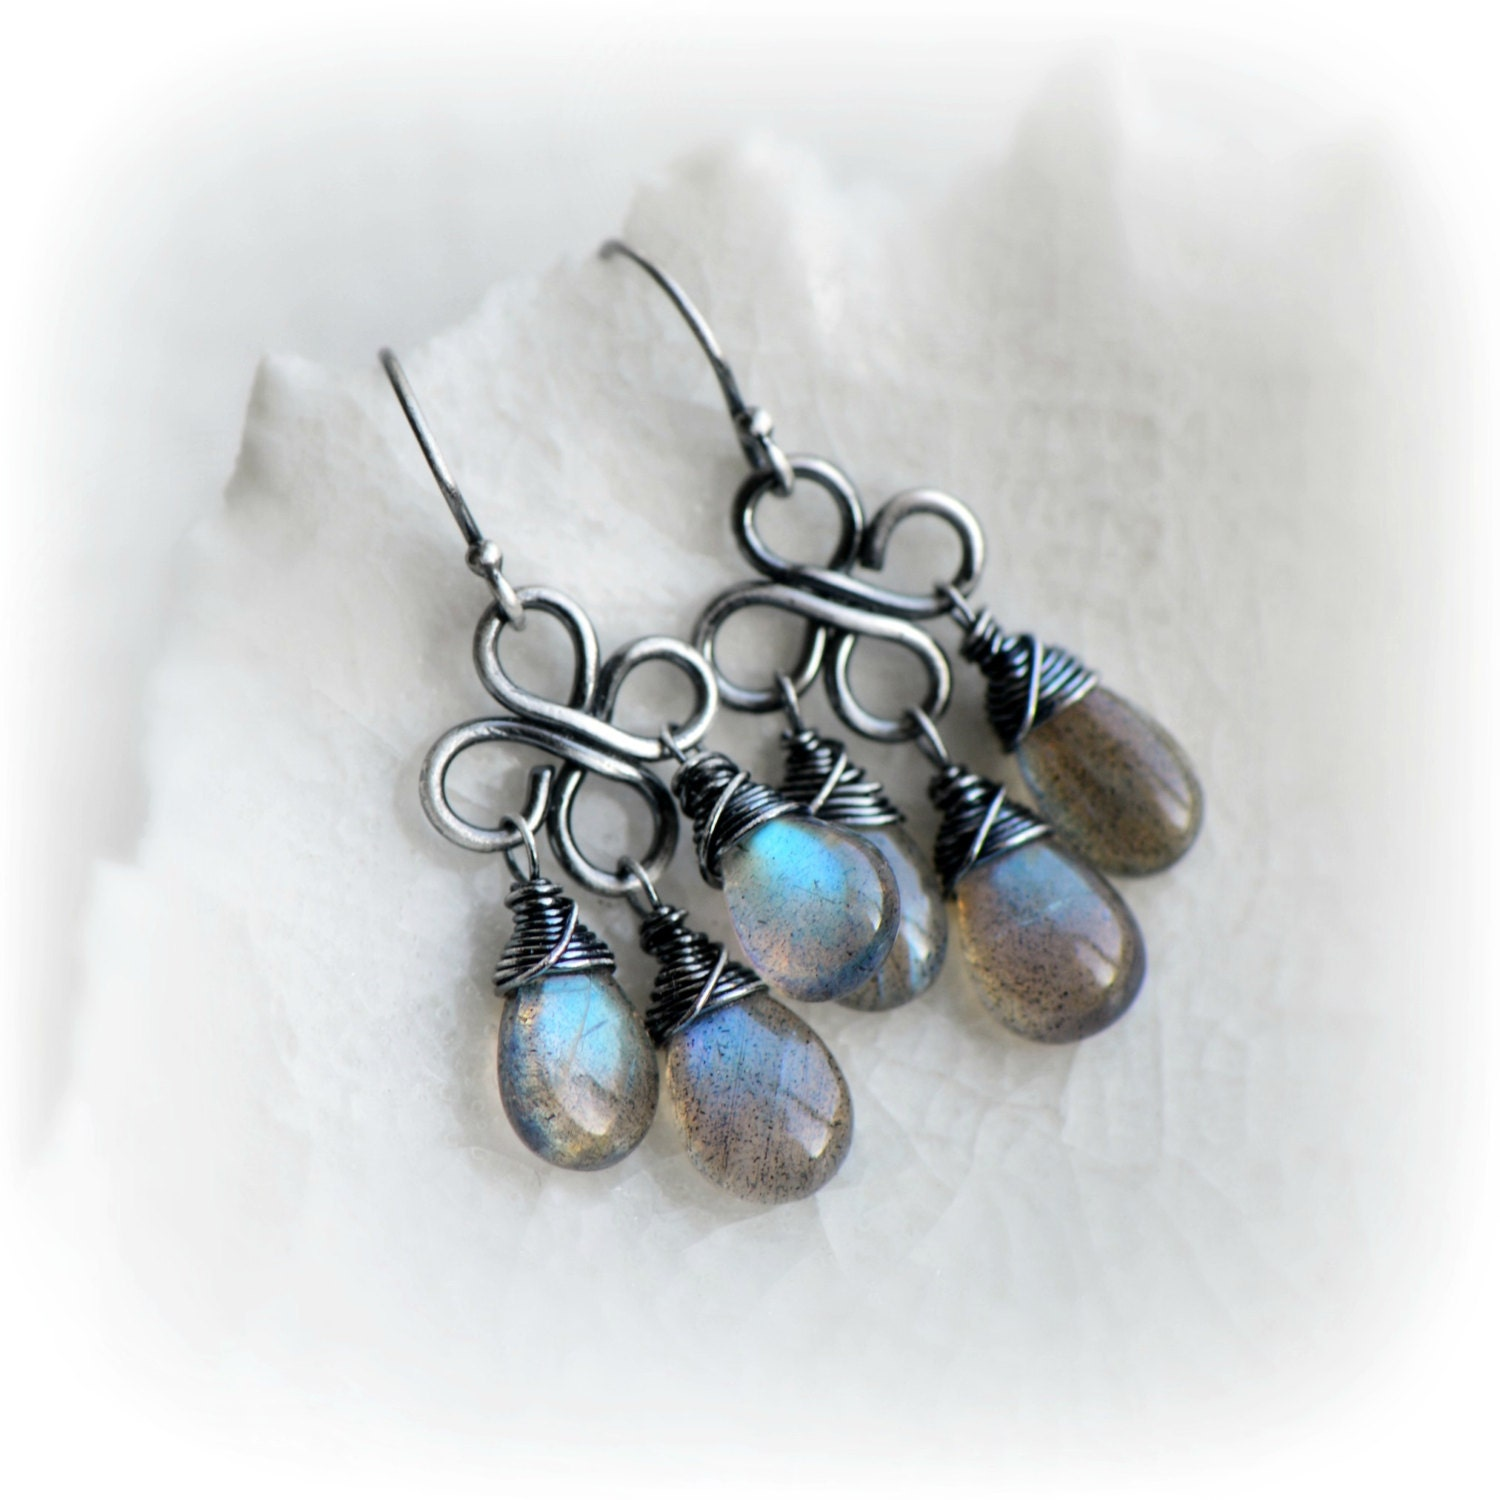 Small Blue Earrings: Labradorite Earrings Blue Labradorite Dangle Earrings Small